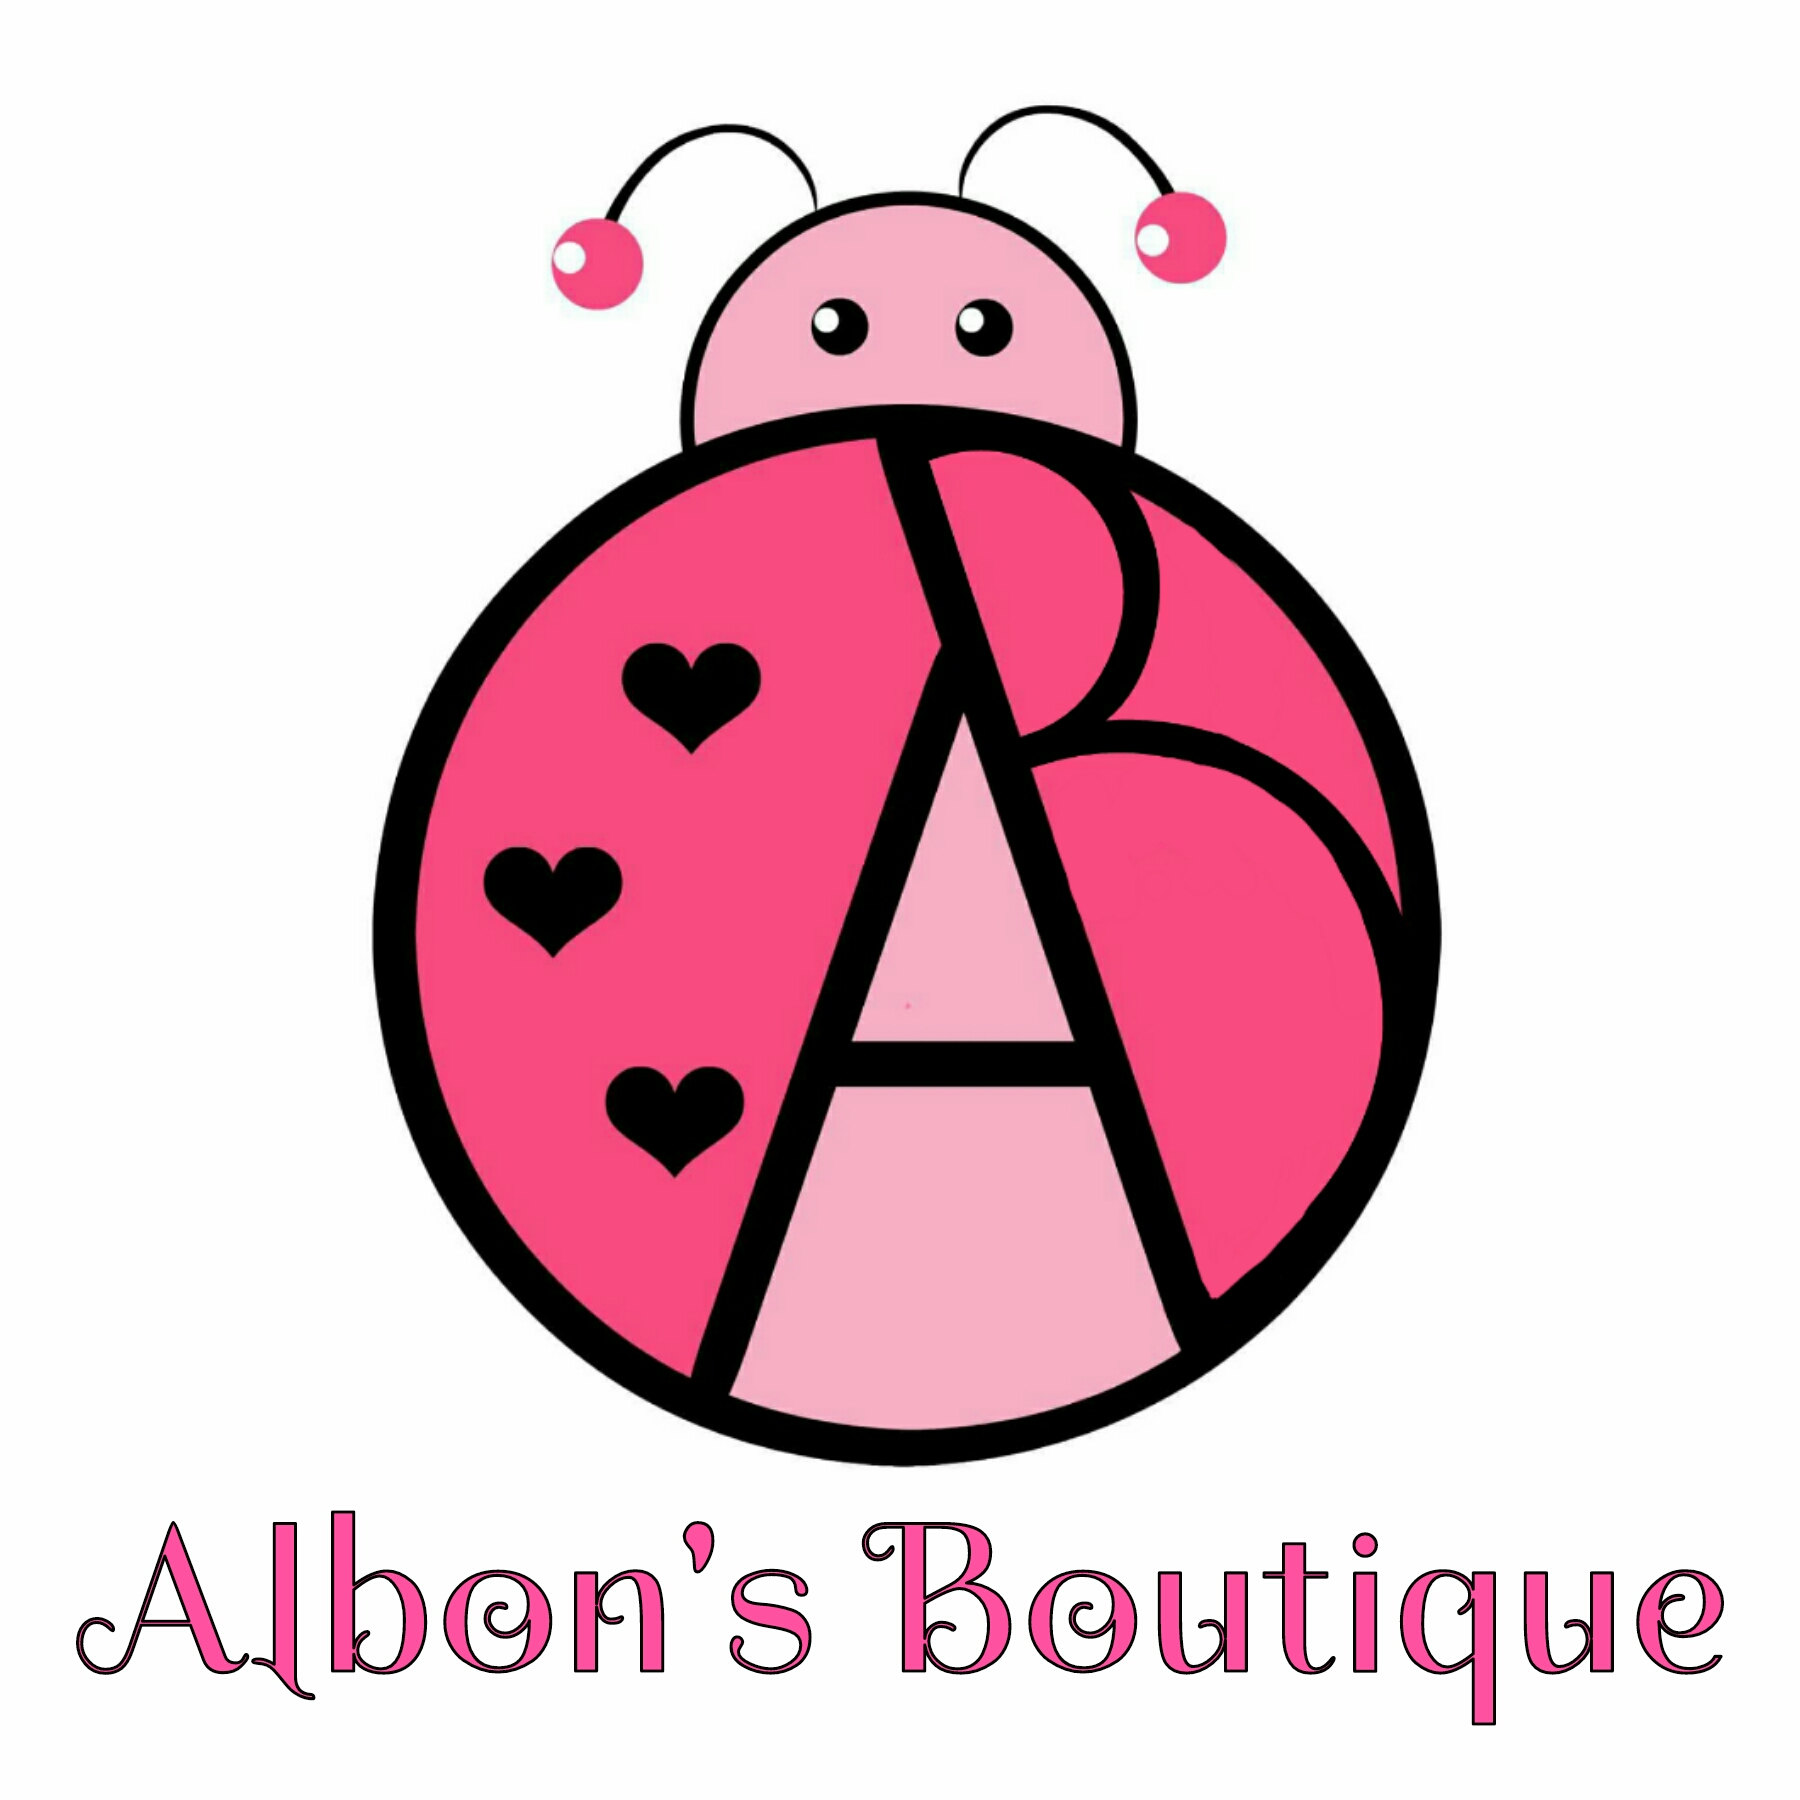 Albon's Boutique Wall Letters Name Signs and by AlbonsBoutique.